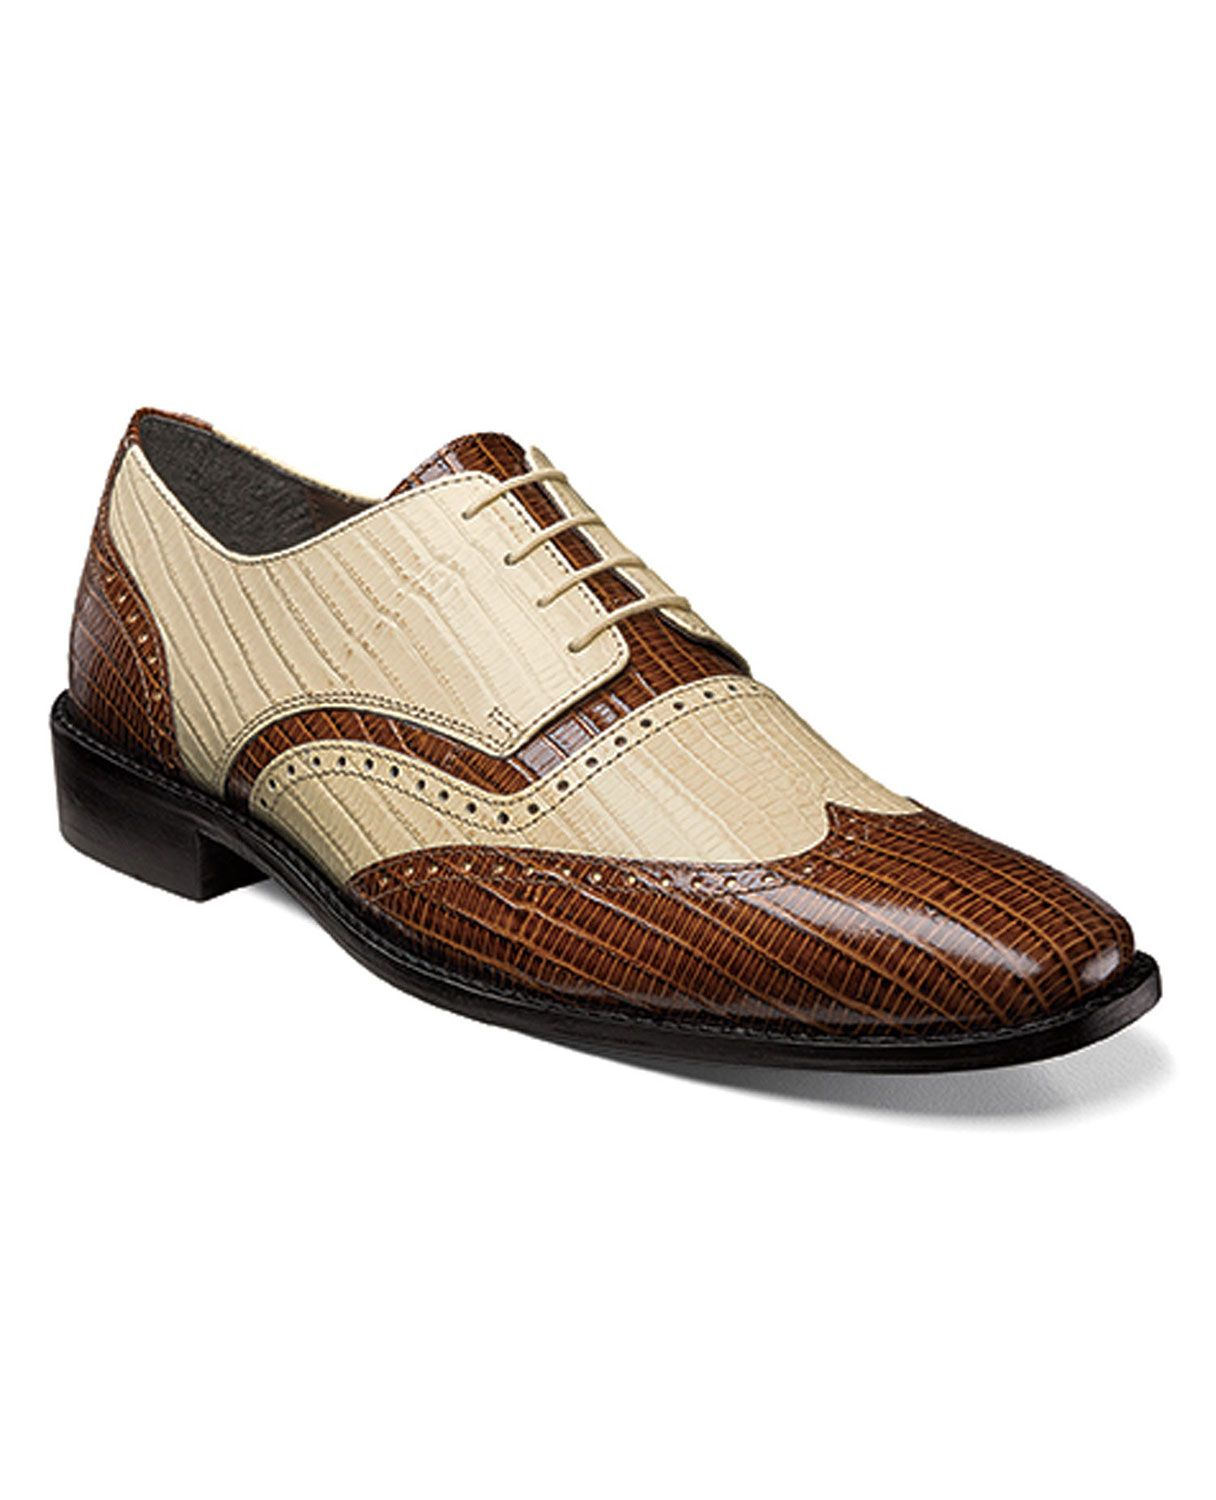 38a165de0 These Stacy Adams dress shoes modernizes old-time charm. The lizard skin  leather make the perfect .